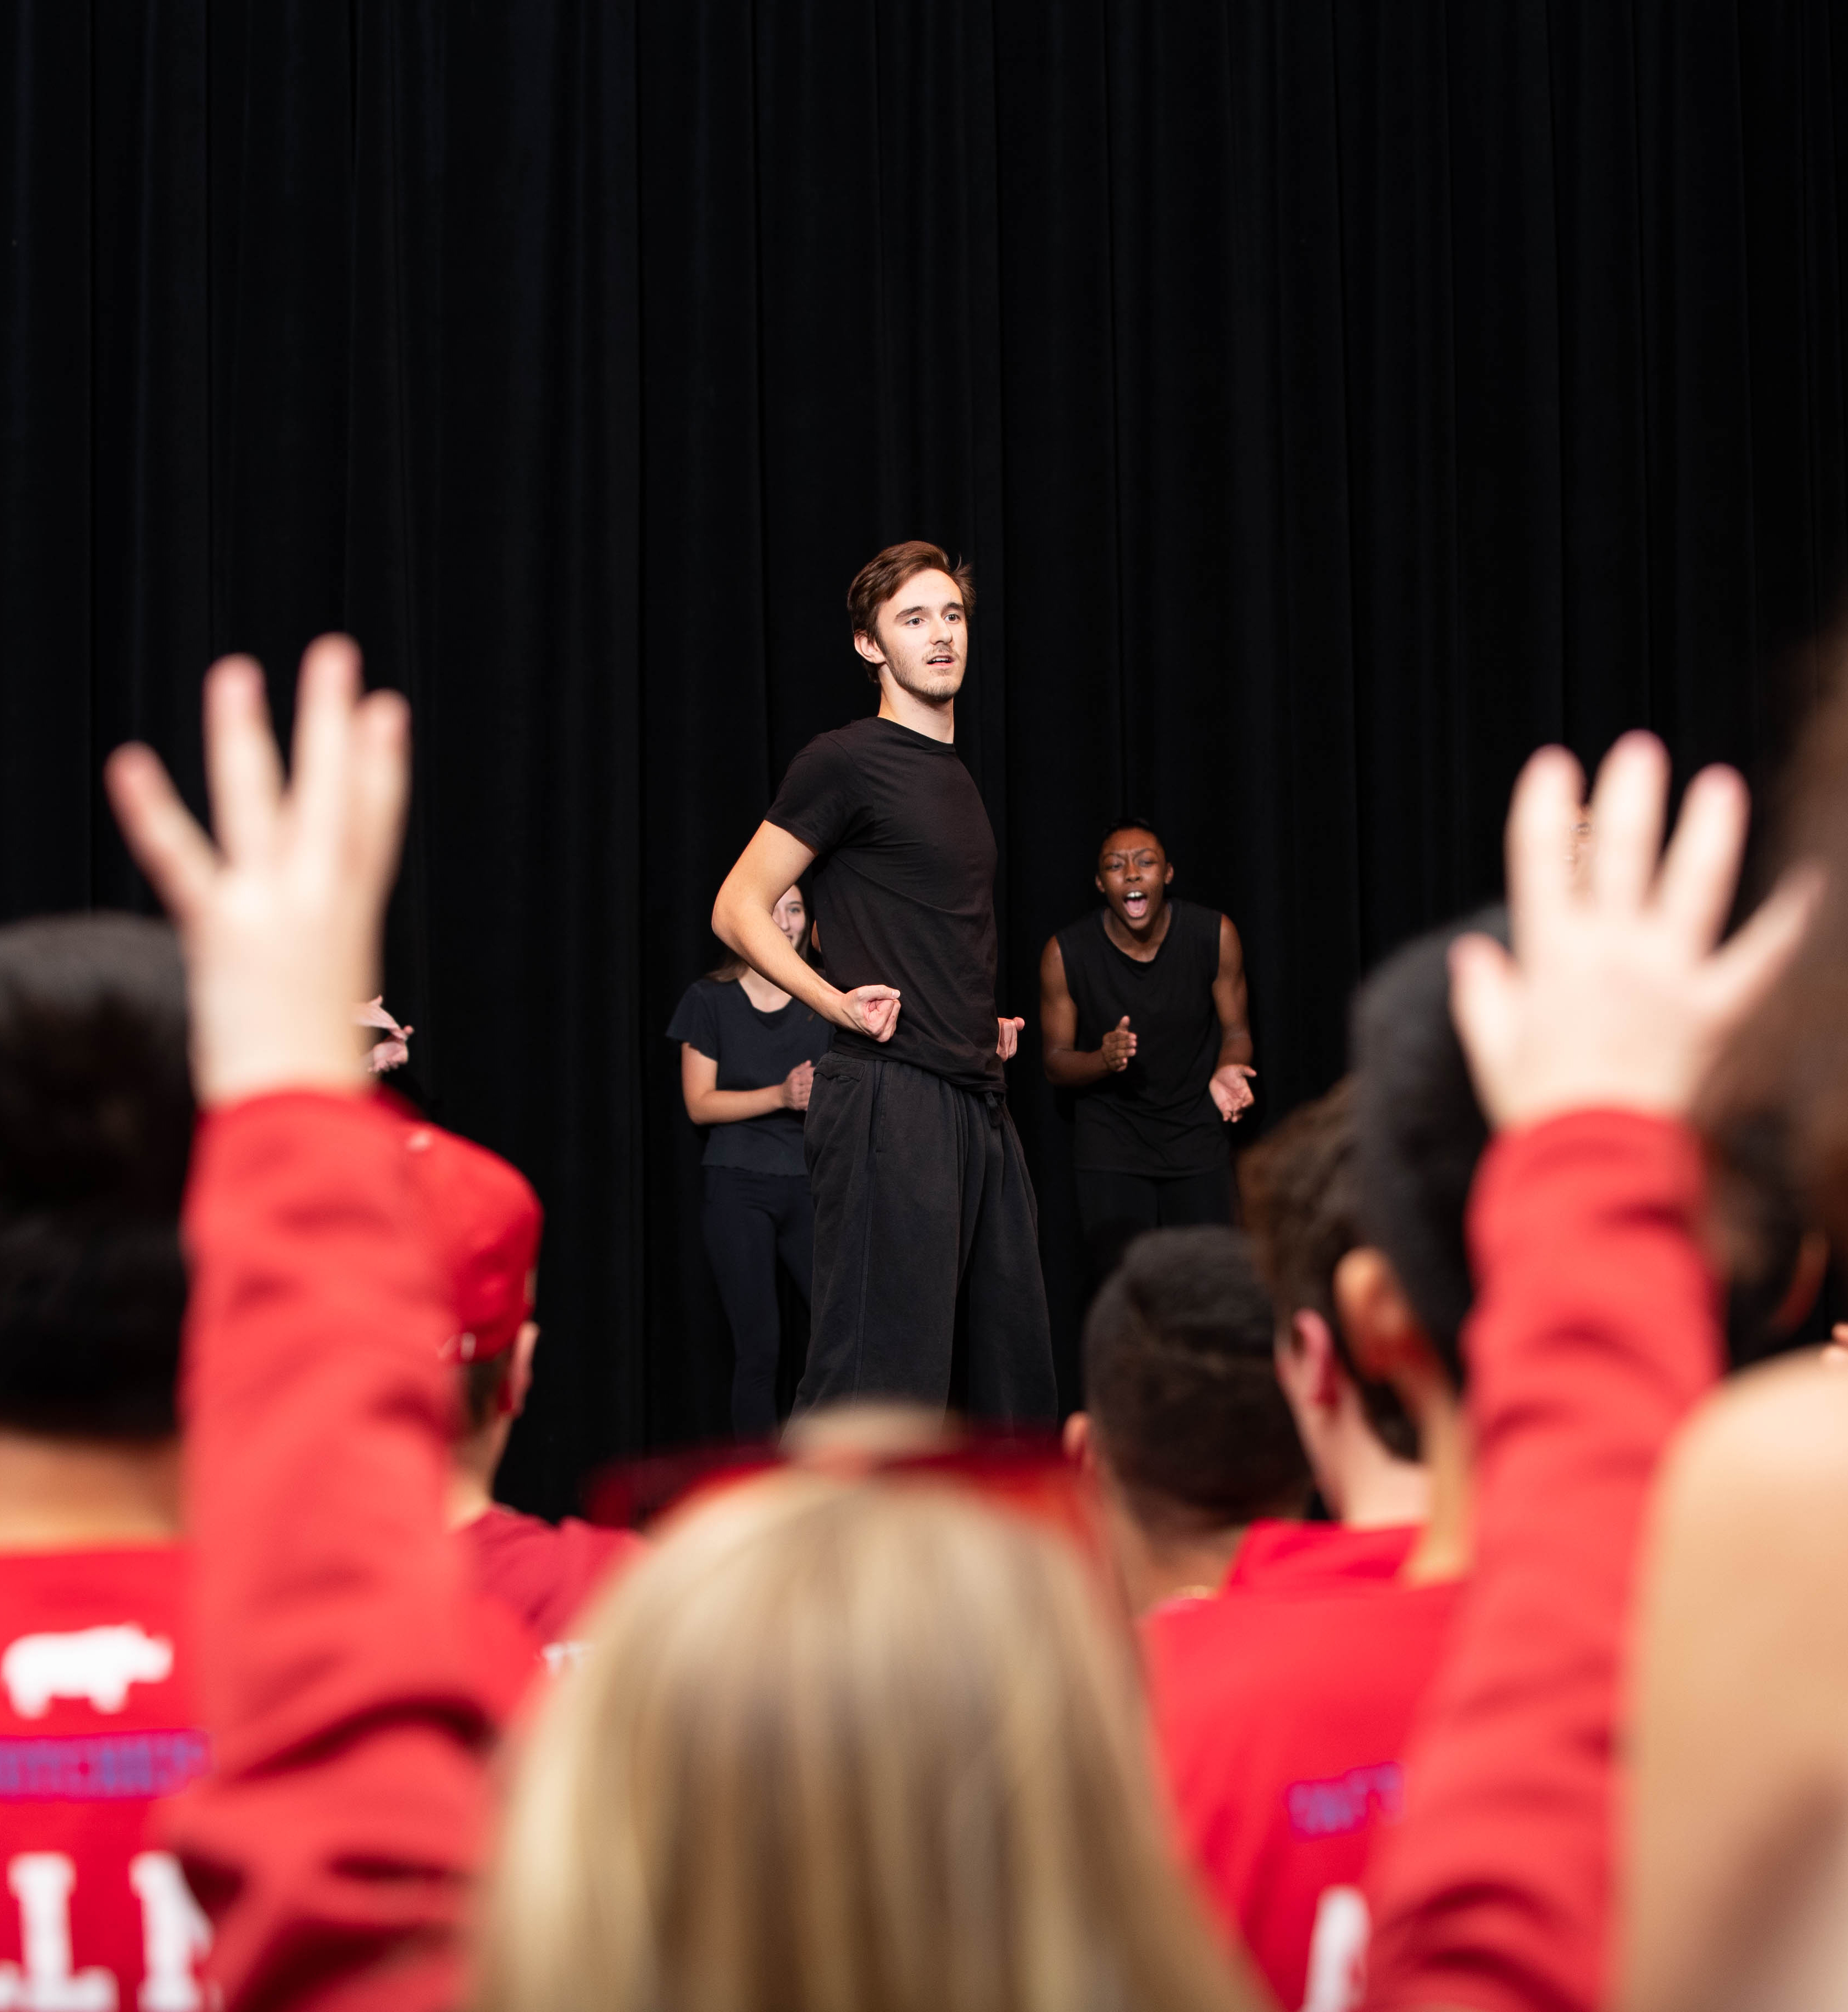 Nick bring the crowd to their feet during a Step Team performance